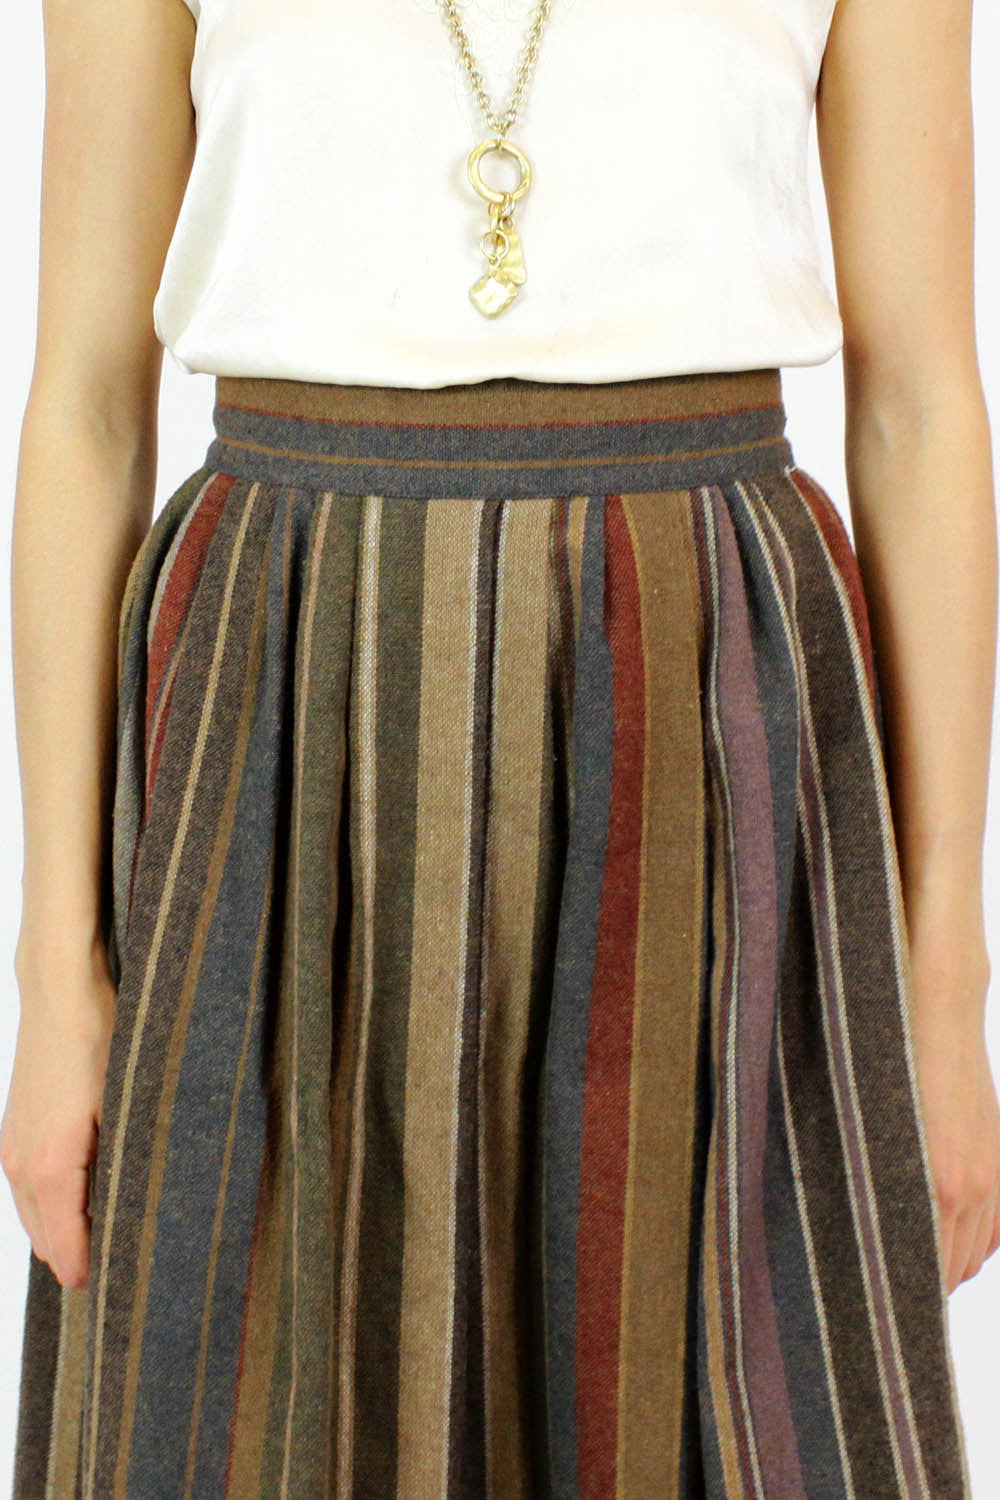 SALE... fireside blanket skirt M/L